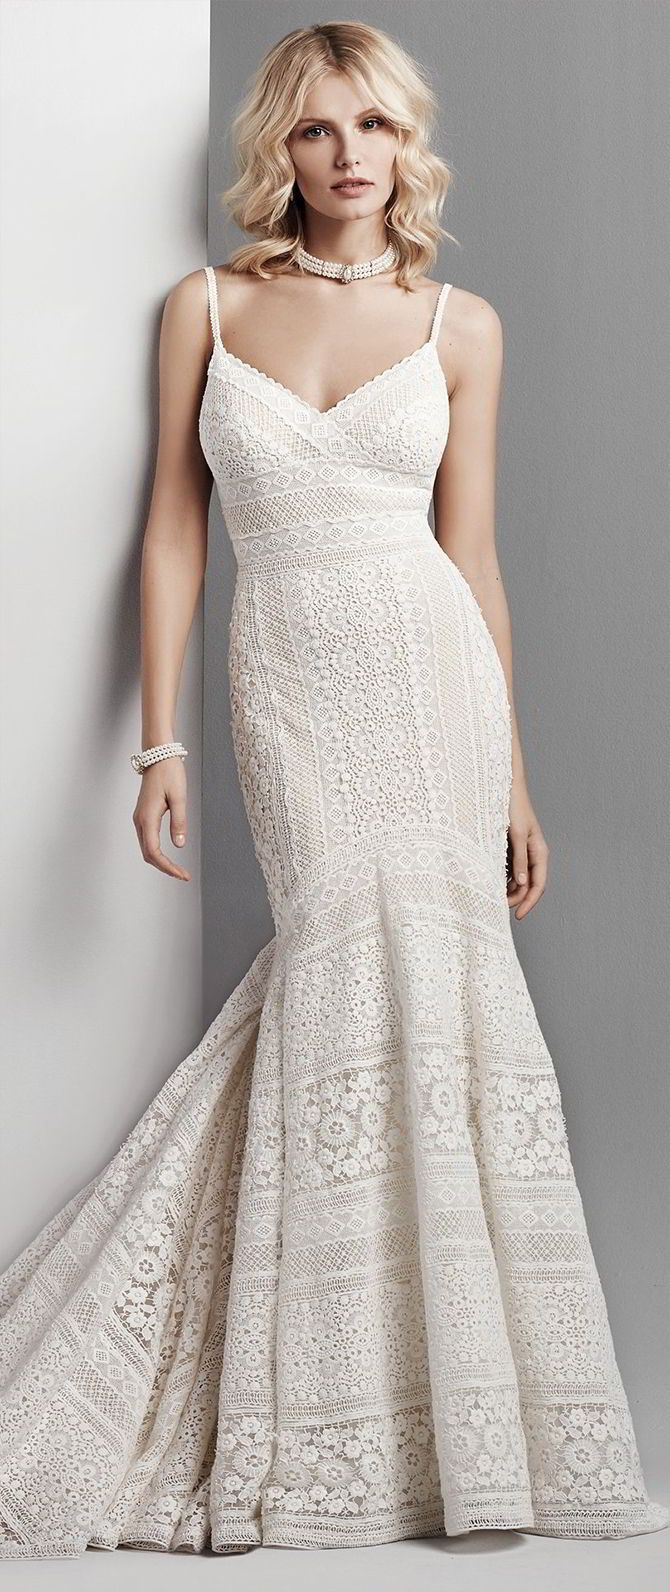 This sexy boho wedding dress features patterns of eyelet lace in a fit-and-flare silhouette. Spaghetti straps complete the V-neckline and V-back. Lined with Viva Jersey for a luxe fit. Finished with zipper closure.